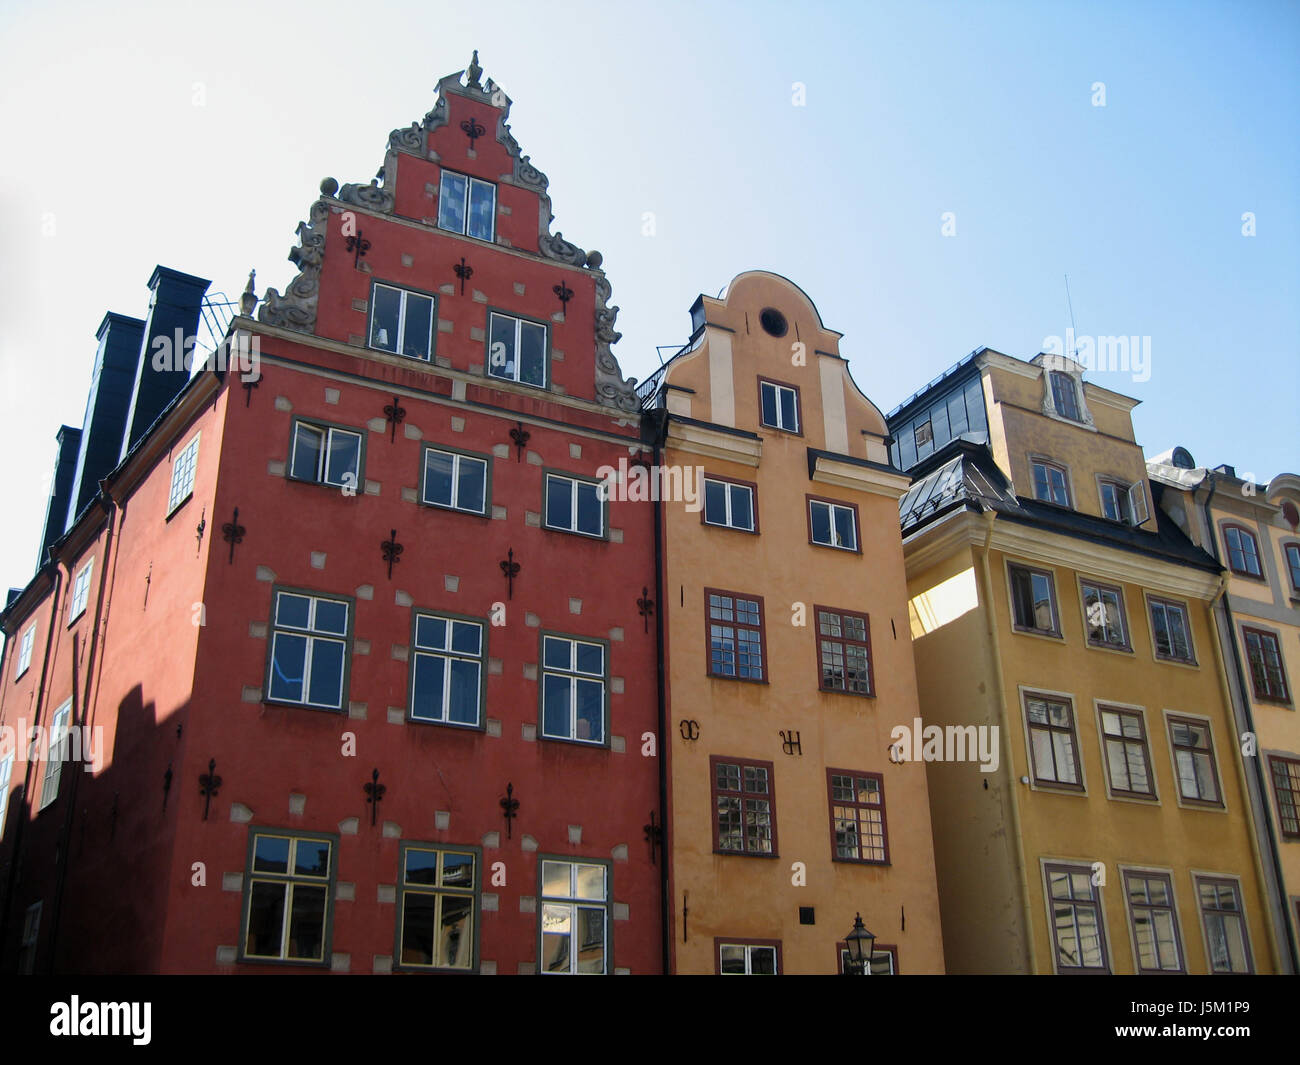 house building houses city town public old town sweden sightseeing square - Stock Image